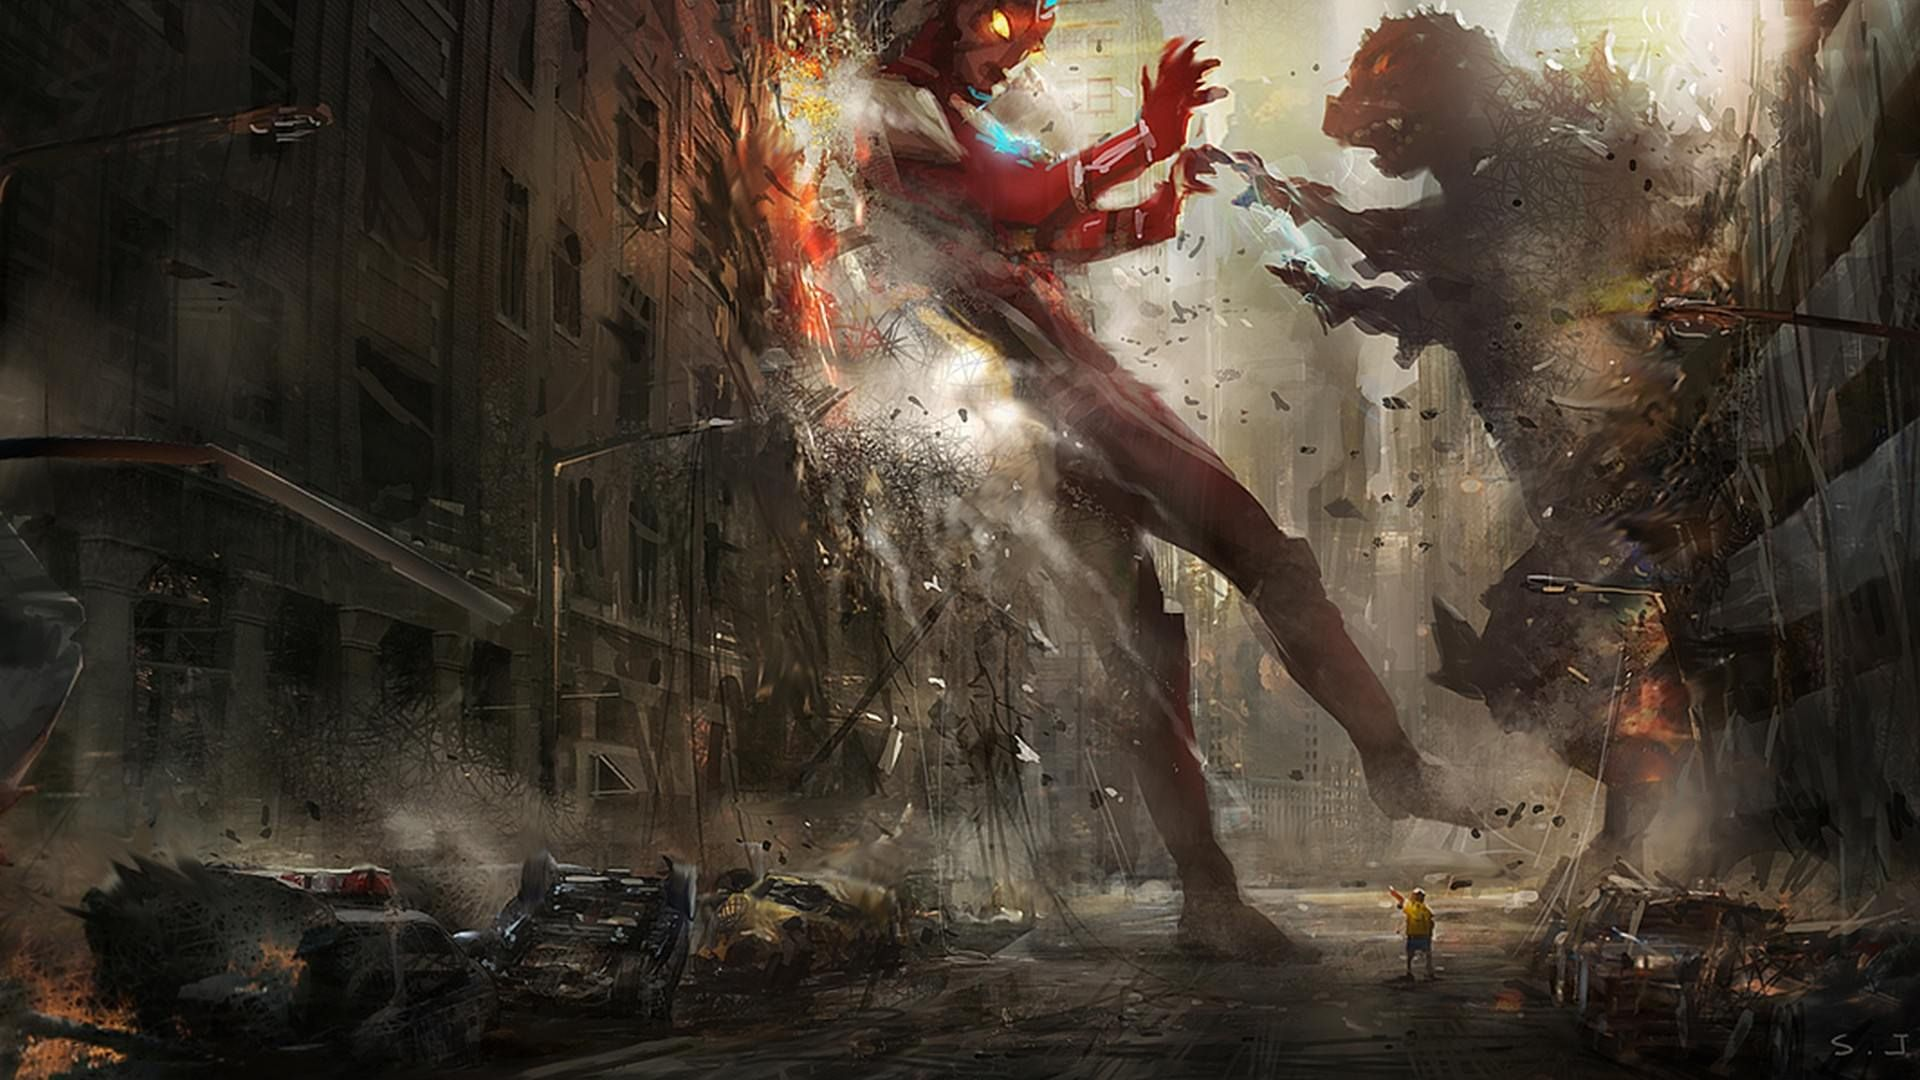 Godzilla vs Ultraman Wallpaper http//digitalart.io